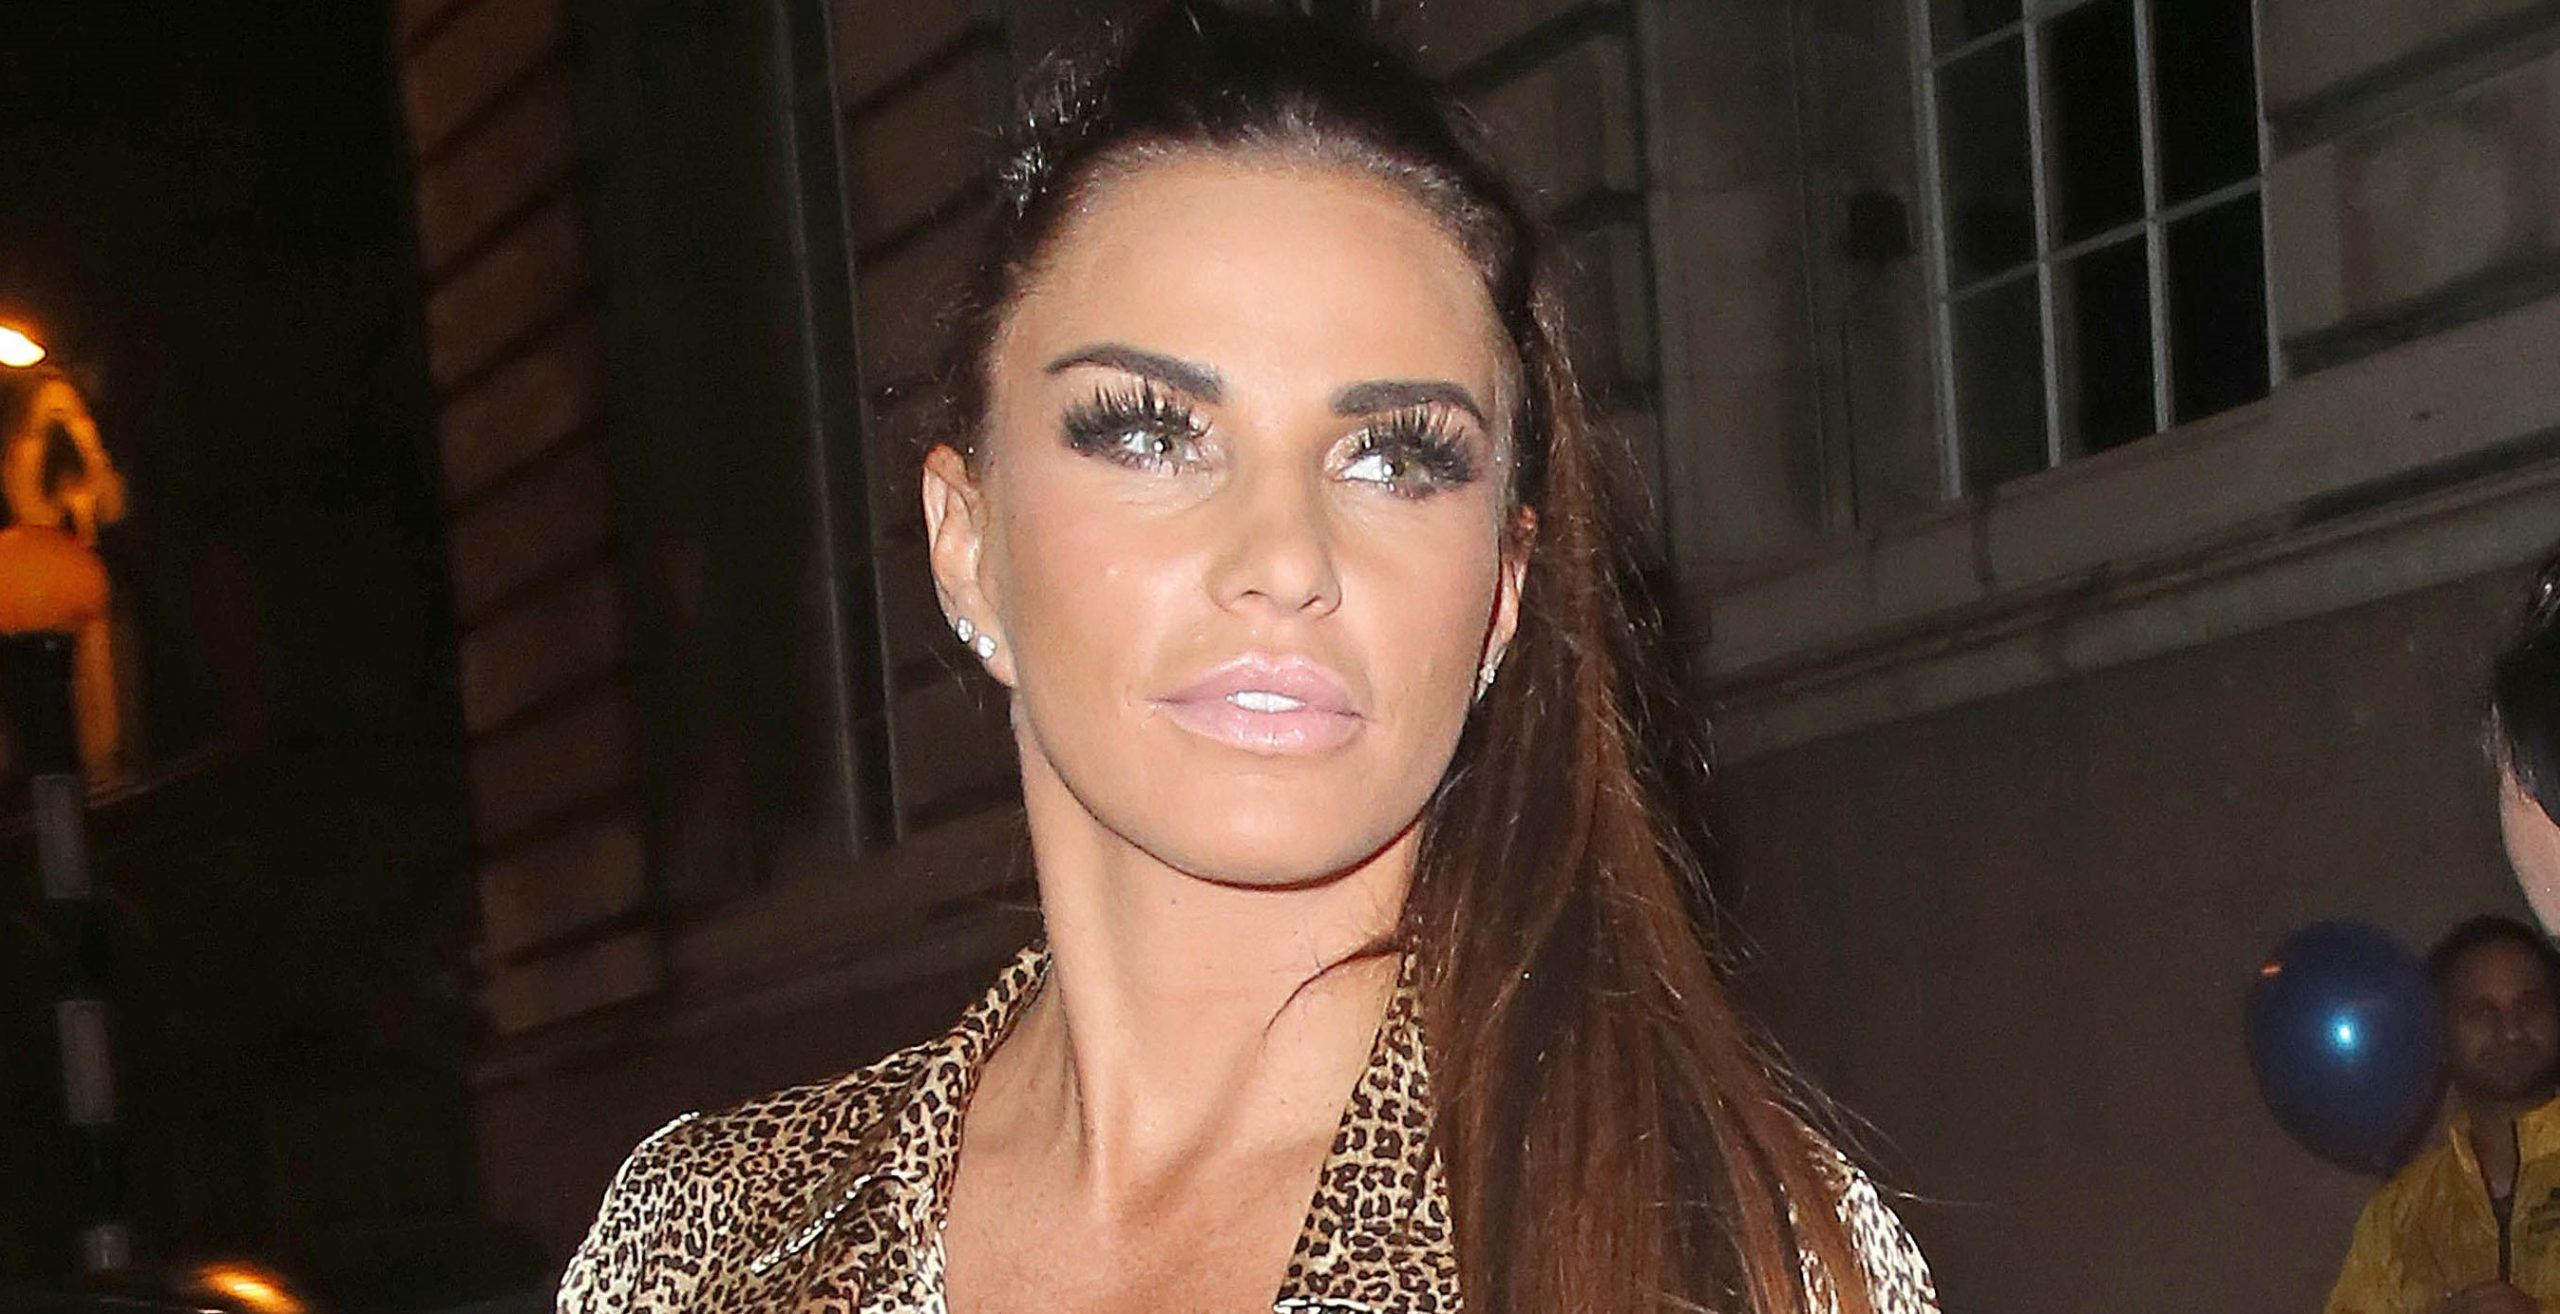 Katie Price denies she was 'partying in Amsterdam after cancelling event due to illness'